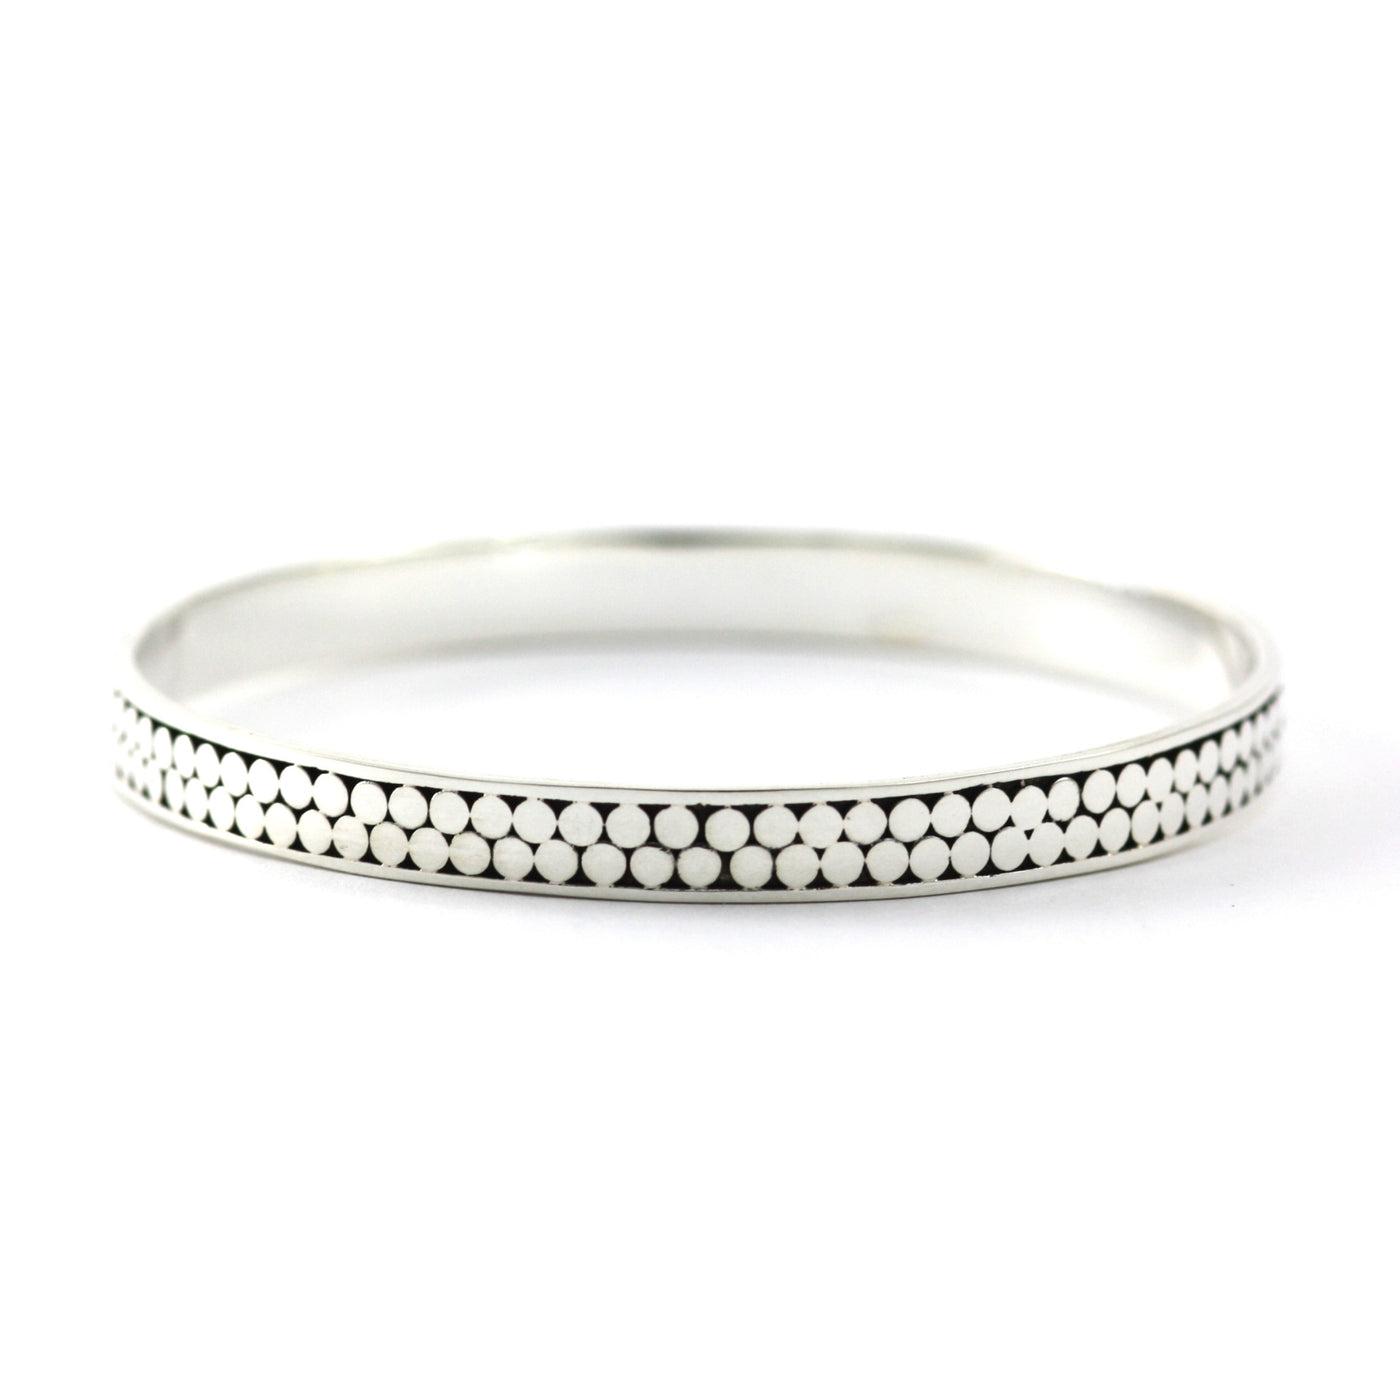 ID B319 DOTTED BANGLE BRACELET